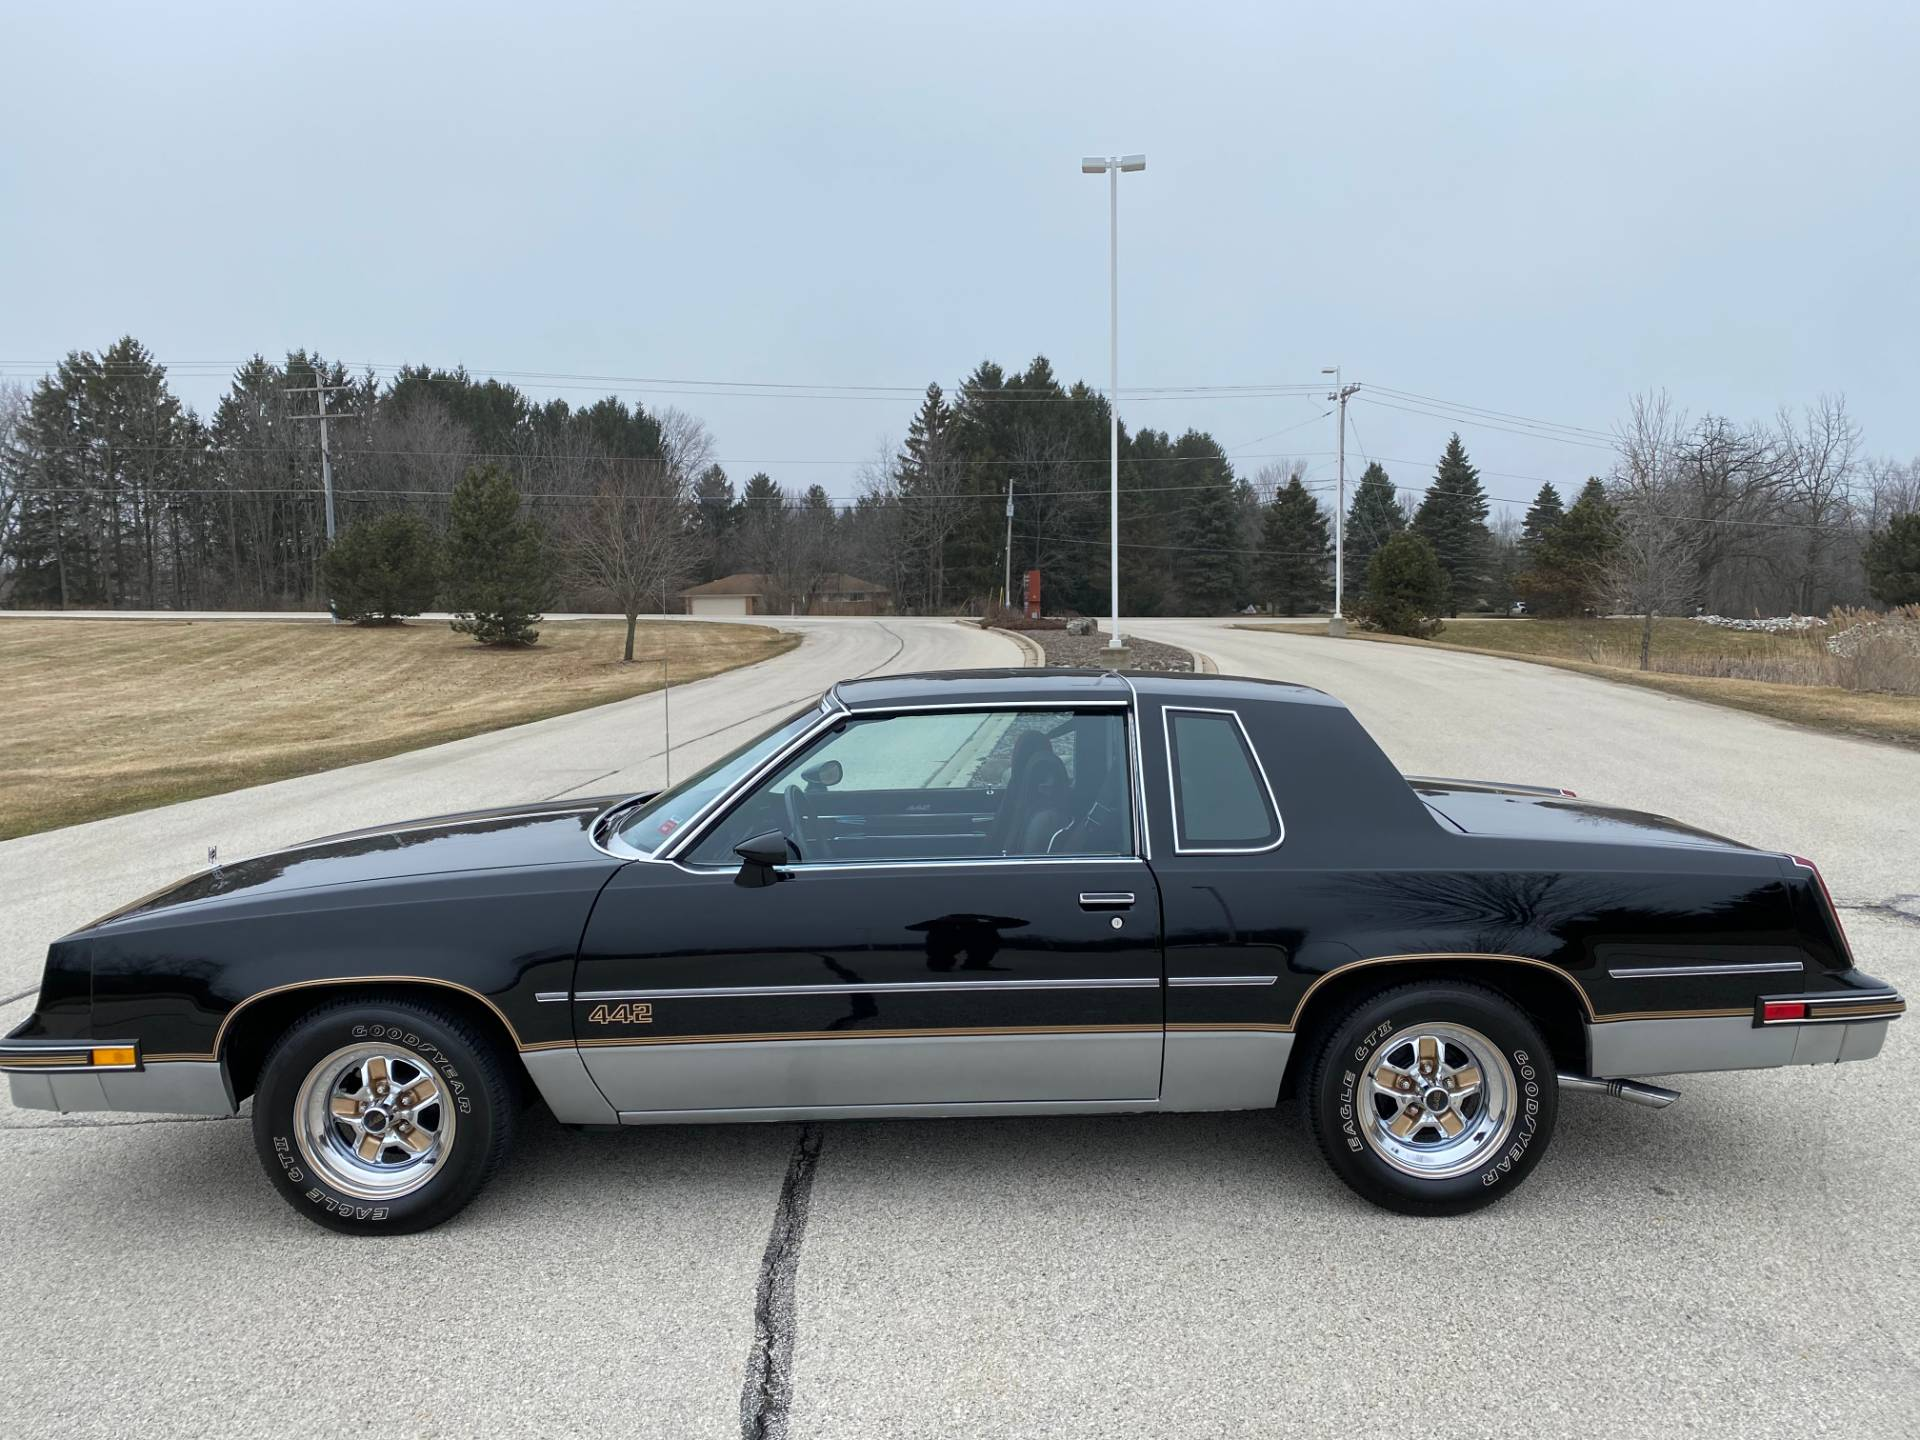 1985 Oldsmobile Cutlass Salon 442 in Big Bend, Wisconsin - Photo 1